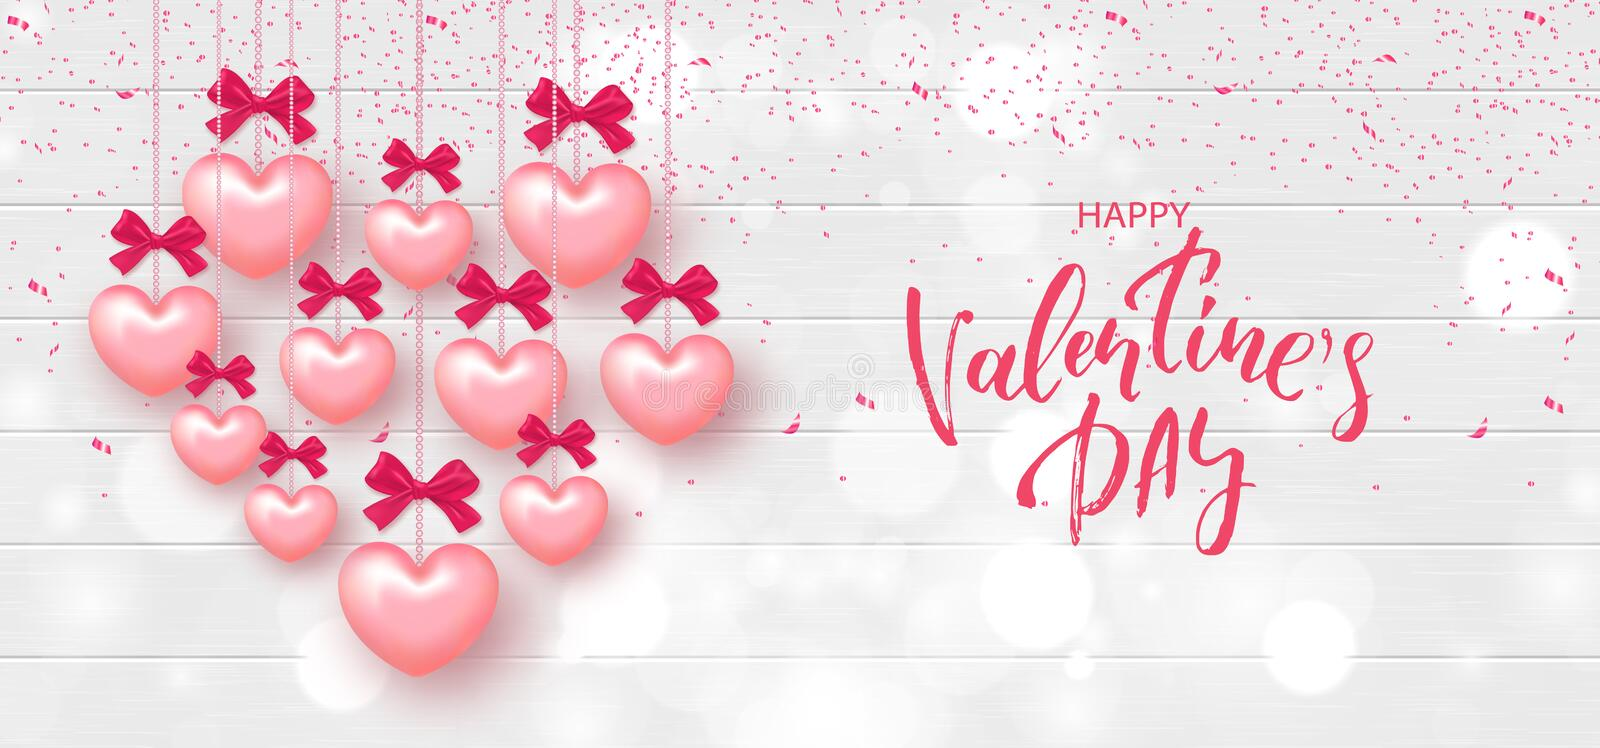 Festive Card for Happy Valentine`s Day. Background with Realistic Hearts and confetti on Wooden Texture. Vector Illustration. vector illustration